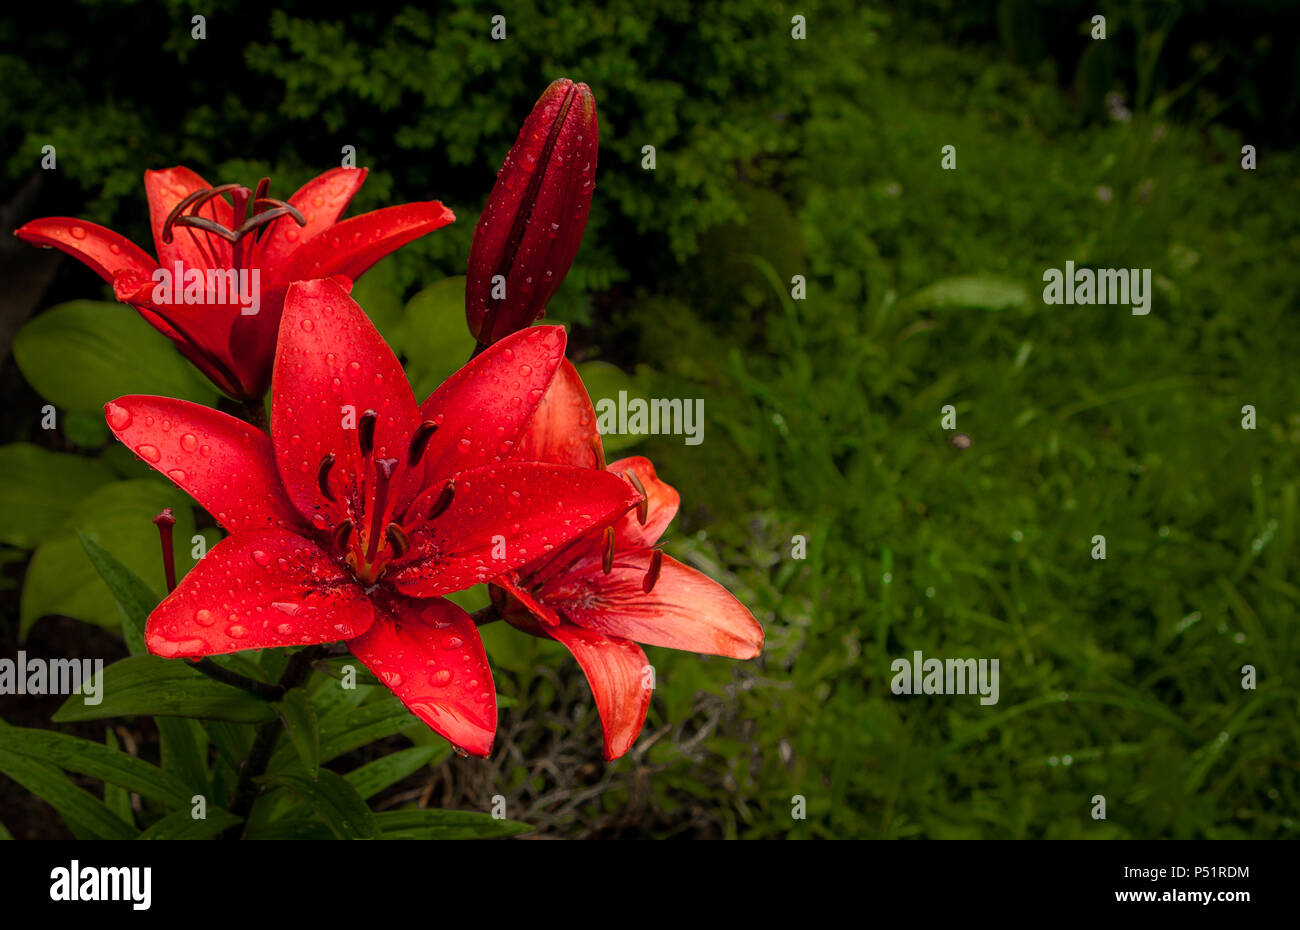 Garden red lily flowers wet from summer rain with copy space stock garden red lily flowers wet from summer rain with copy space izmirmasajfo